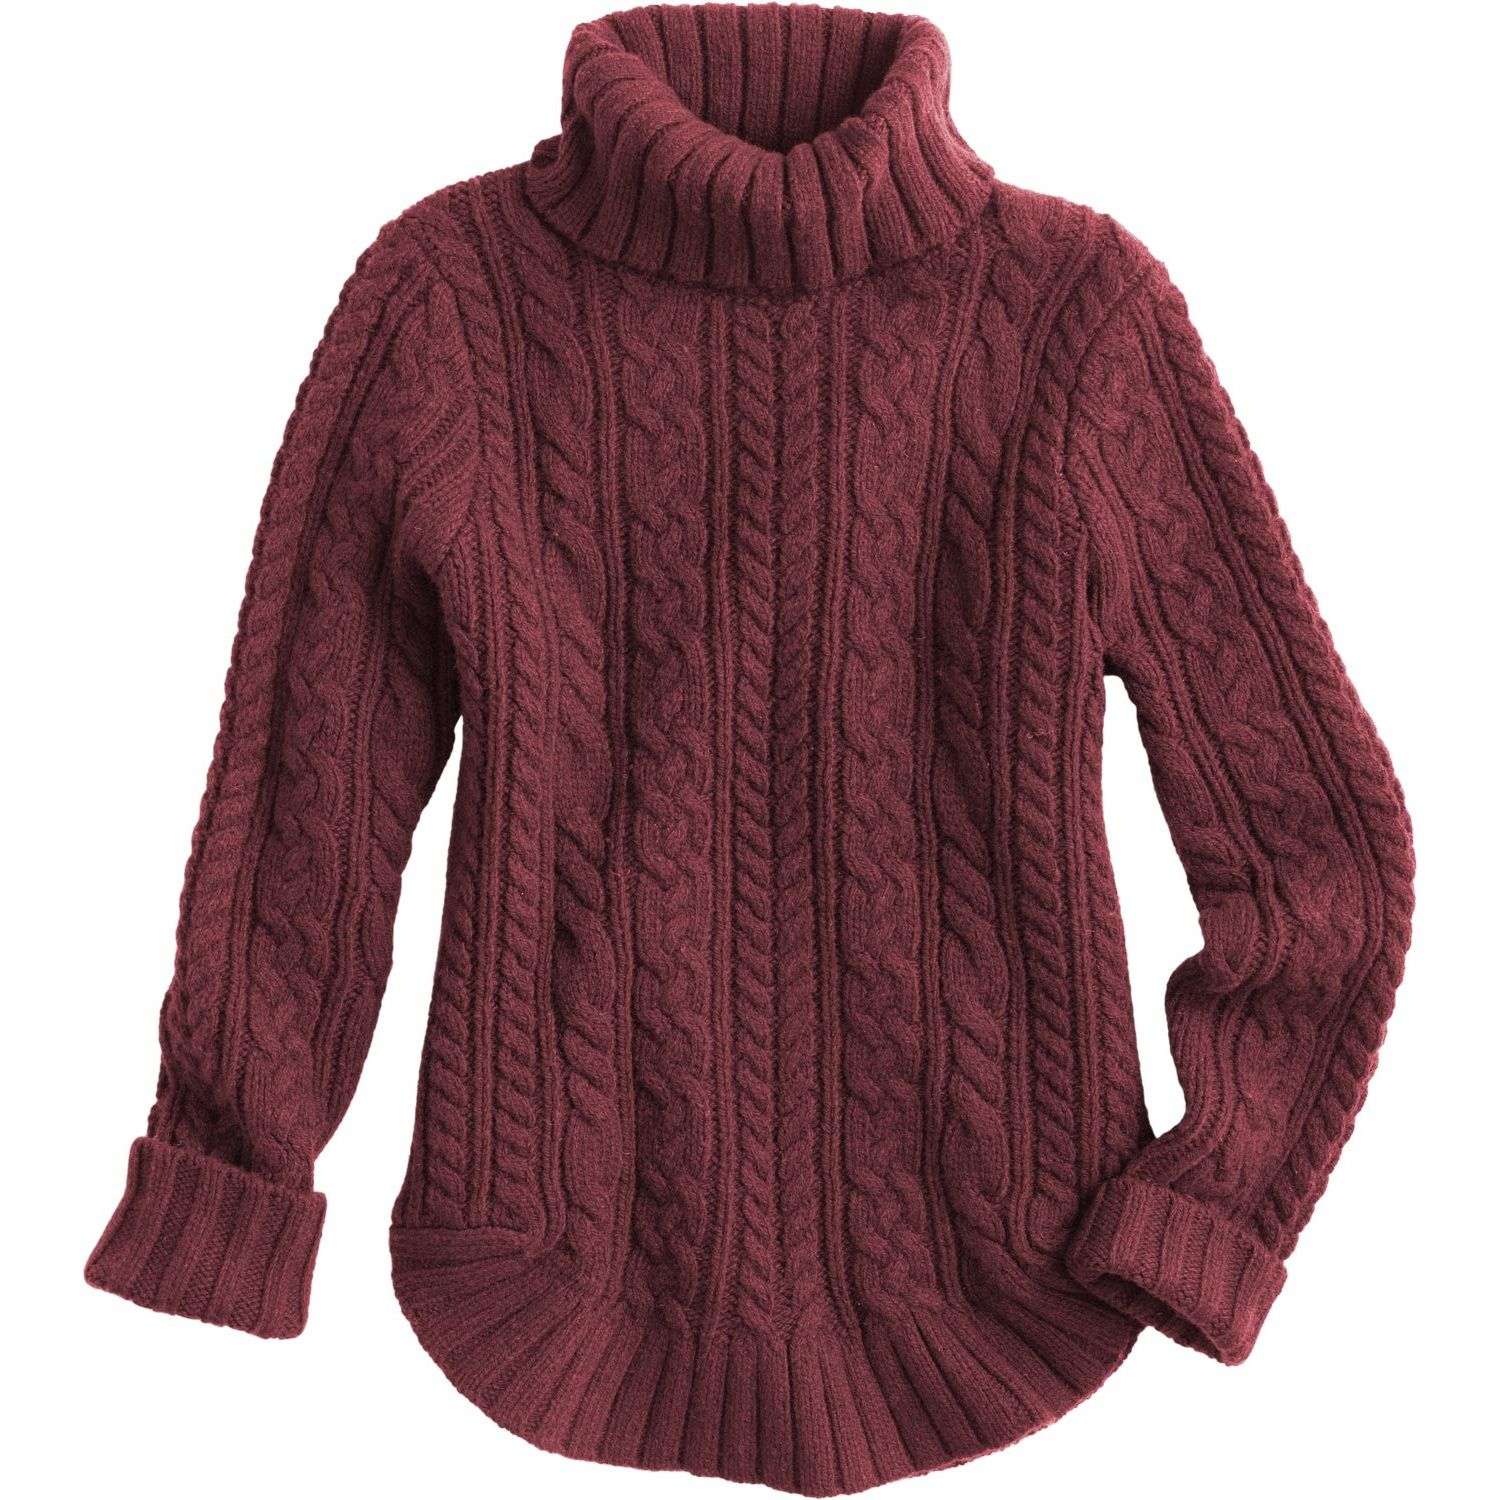 The women's Fisherman Turtleneck Sweater looks like a classic. But ...